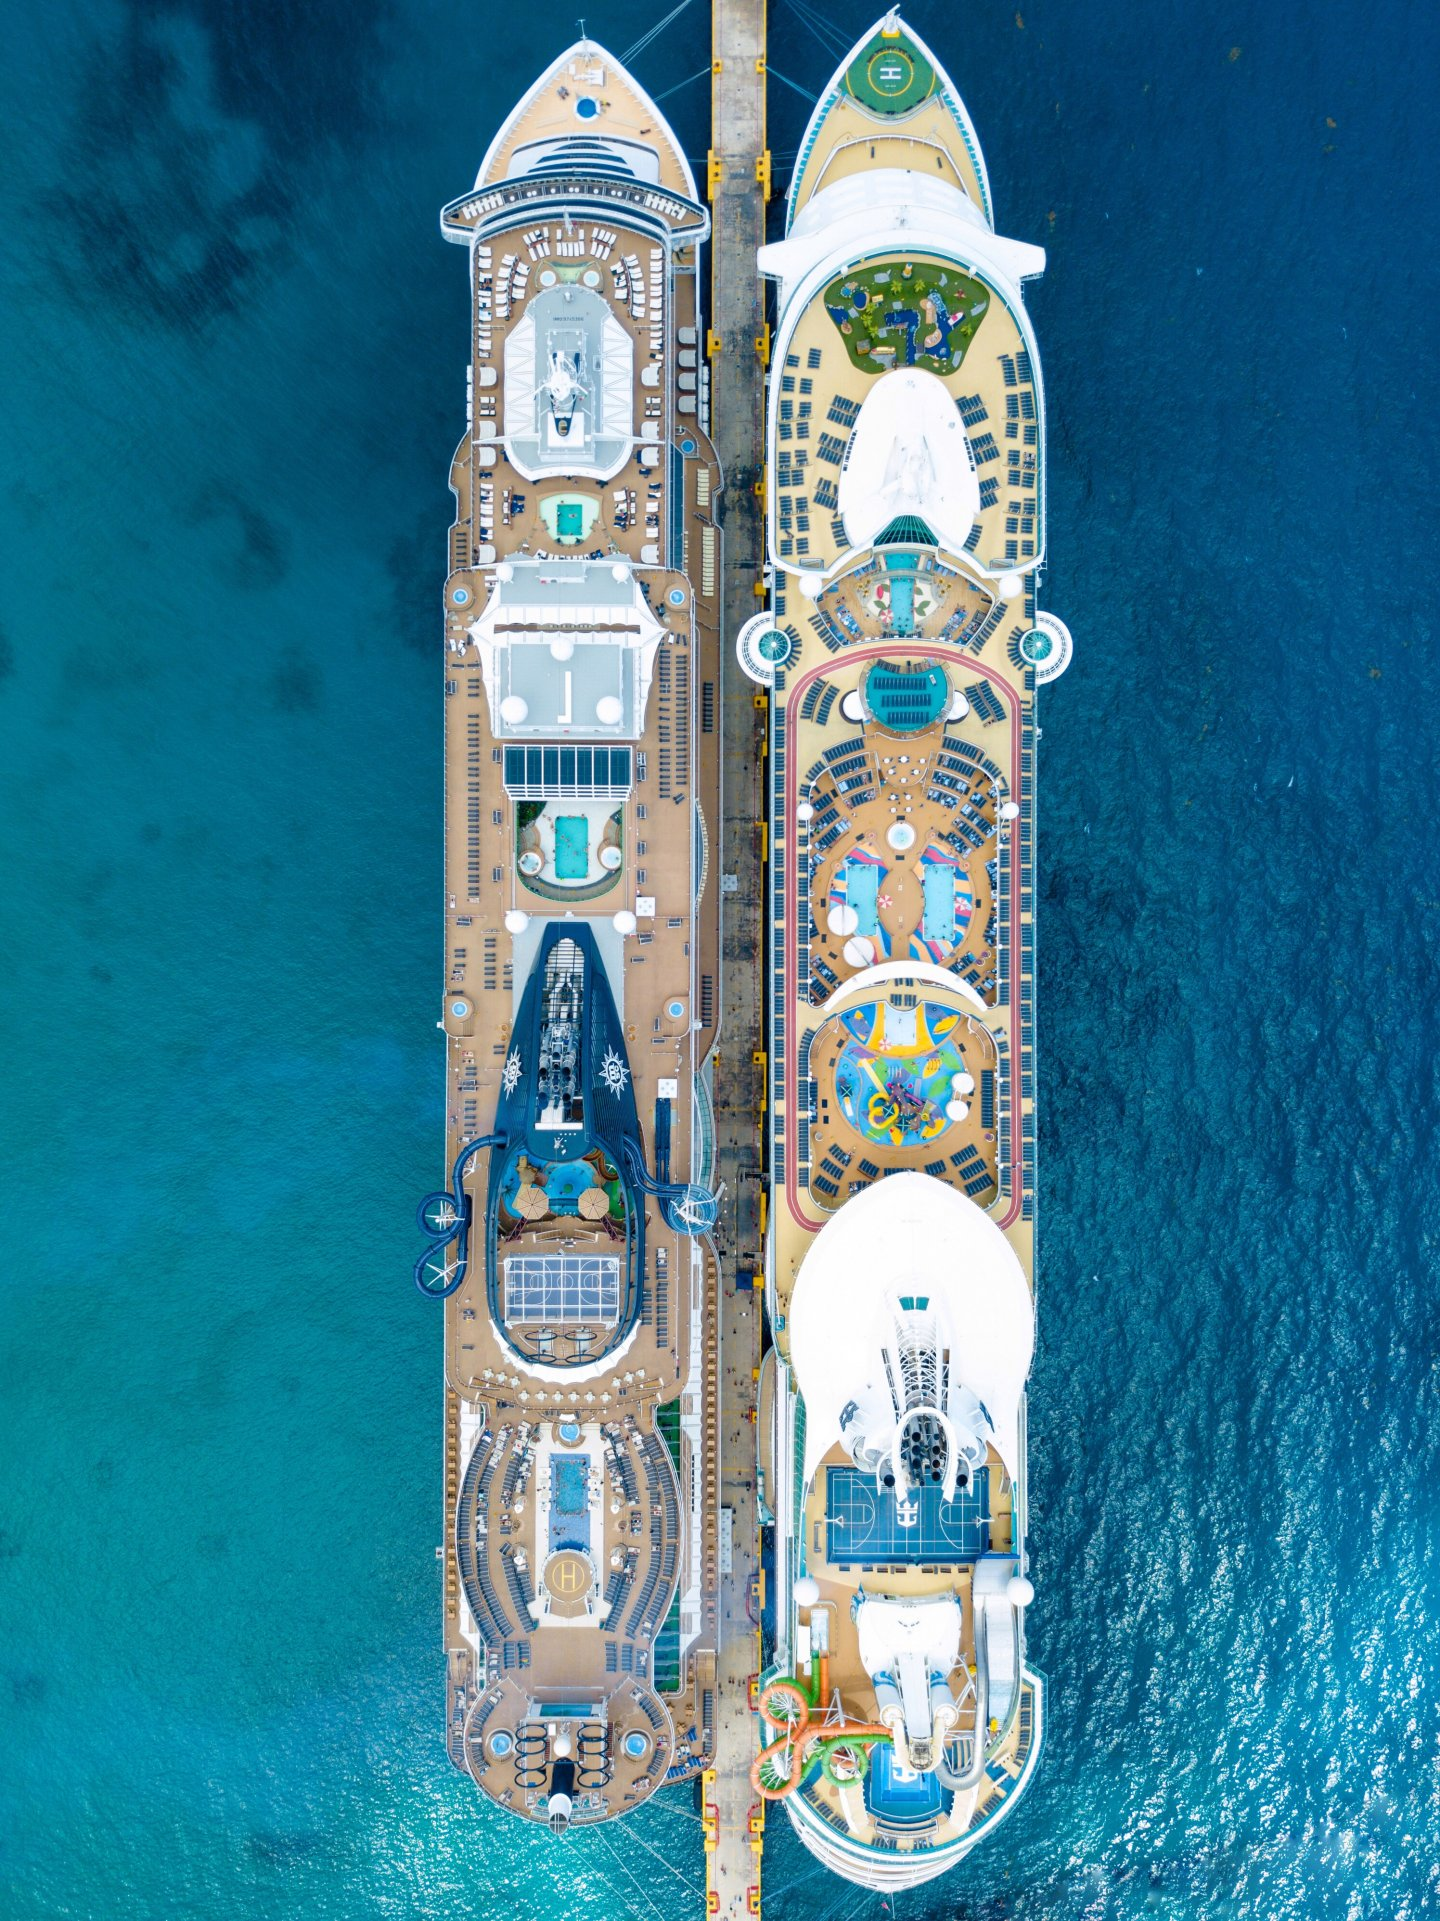 10 Quick Tips to Know for Your First Ever Cruise